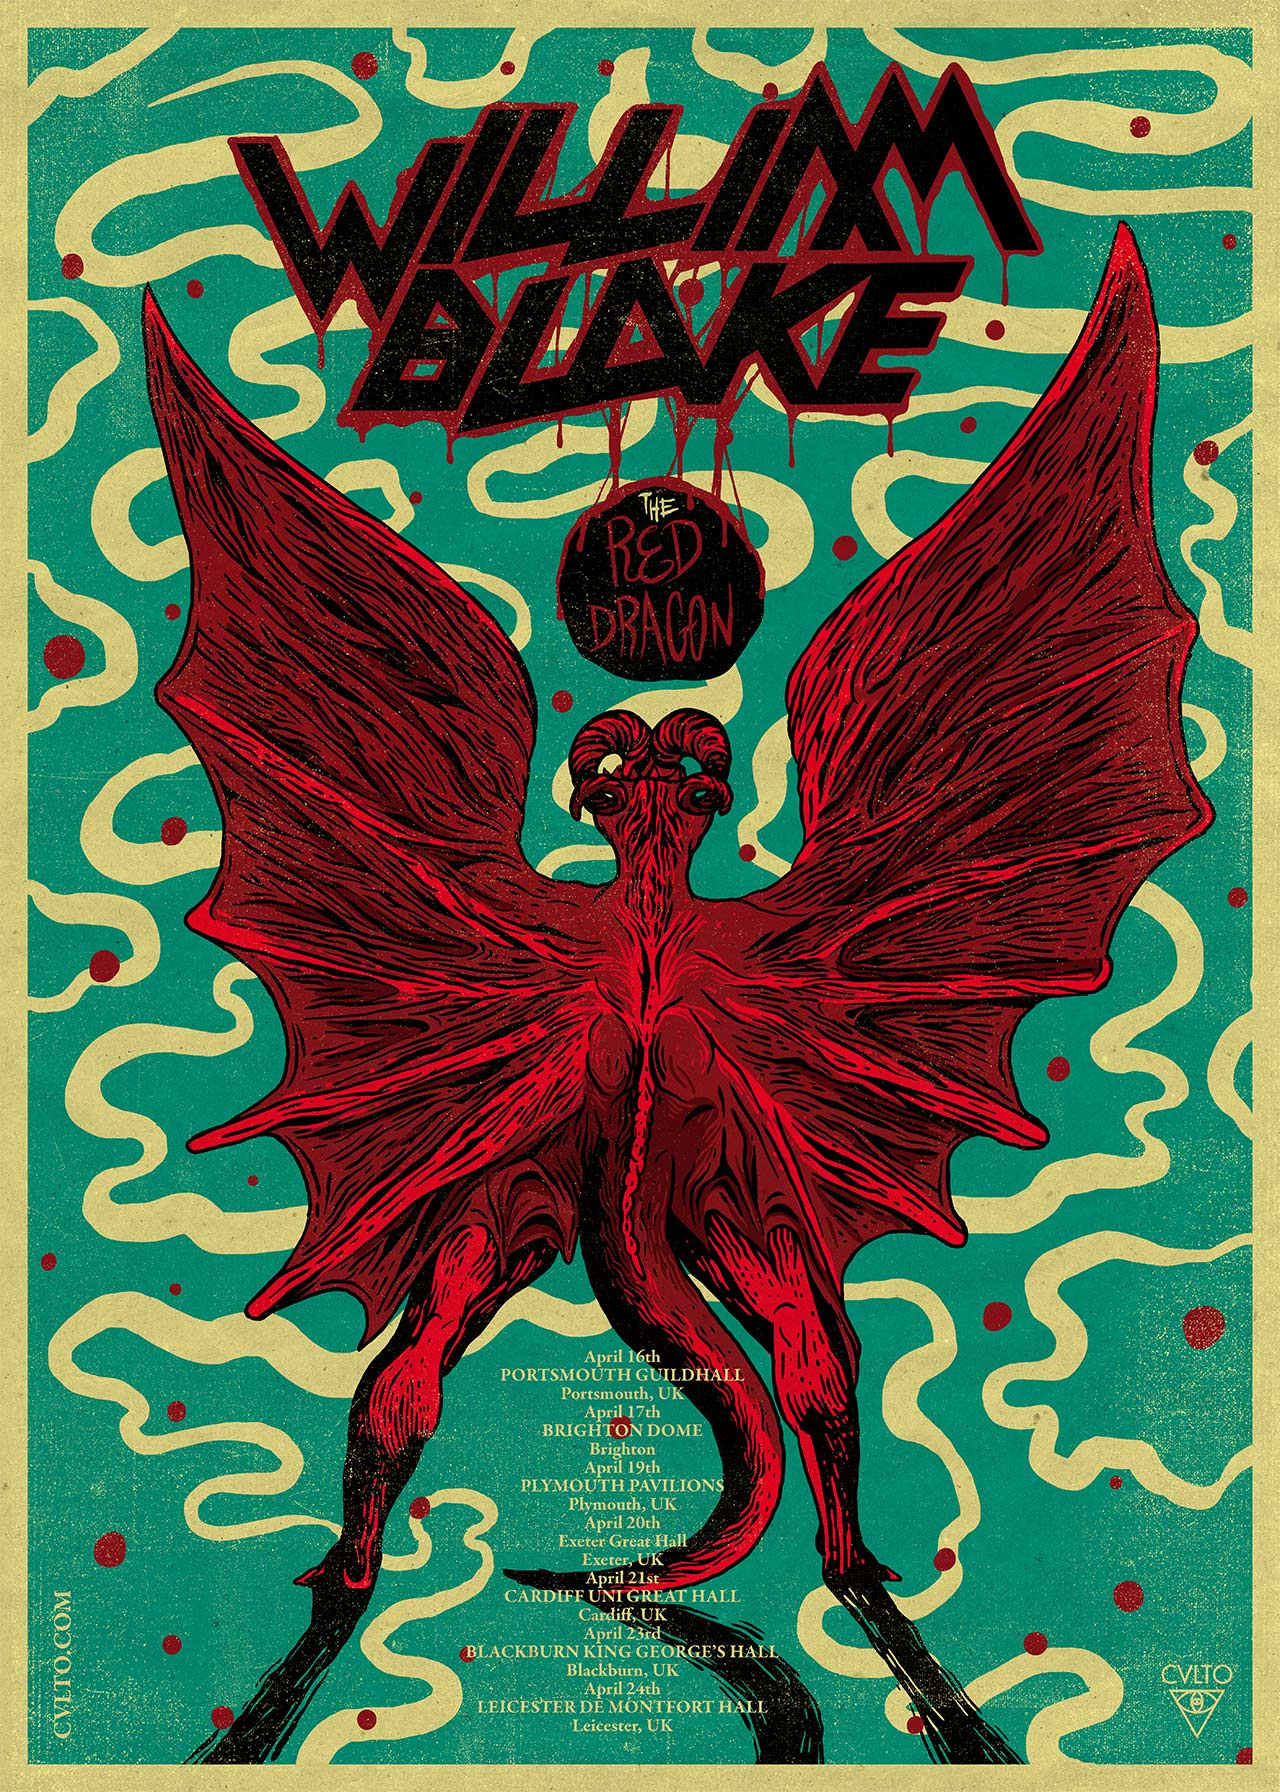 Badass Writers / Red Dragon / William Blake